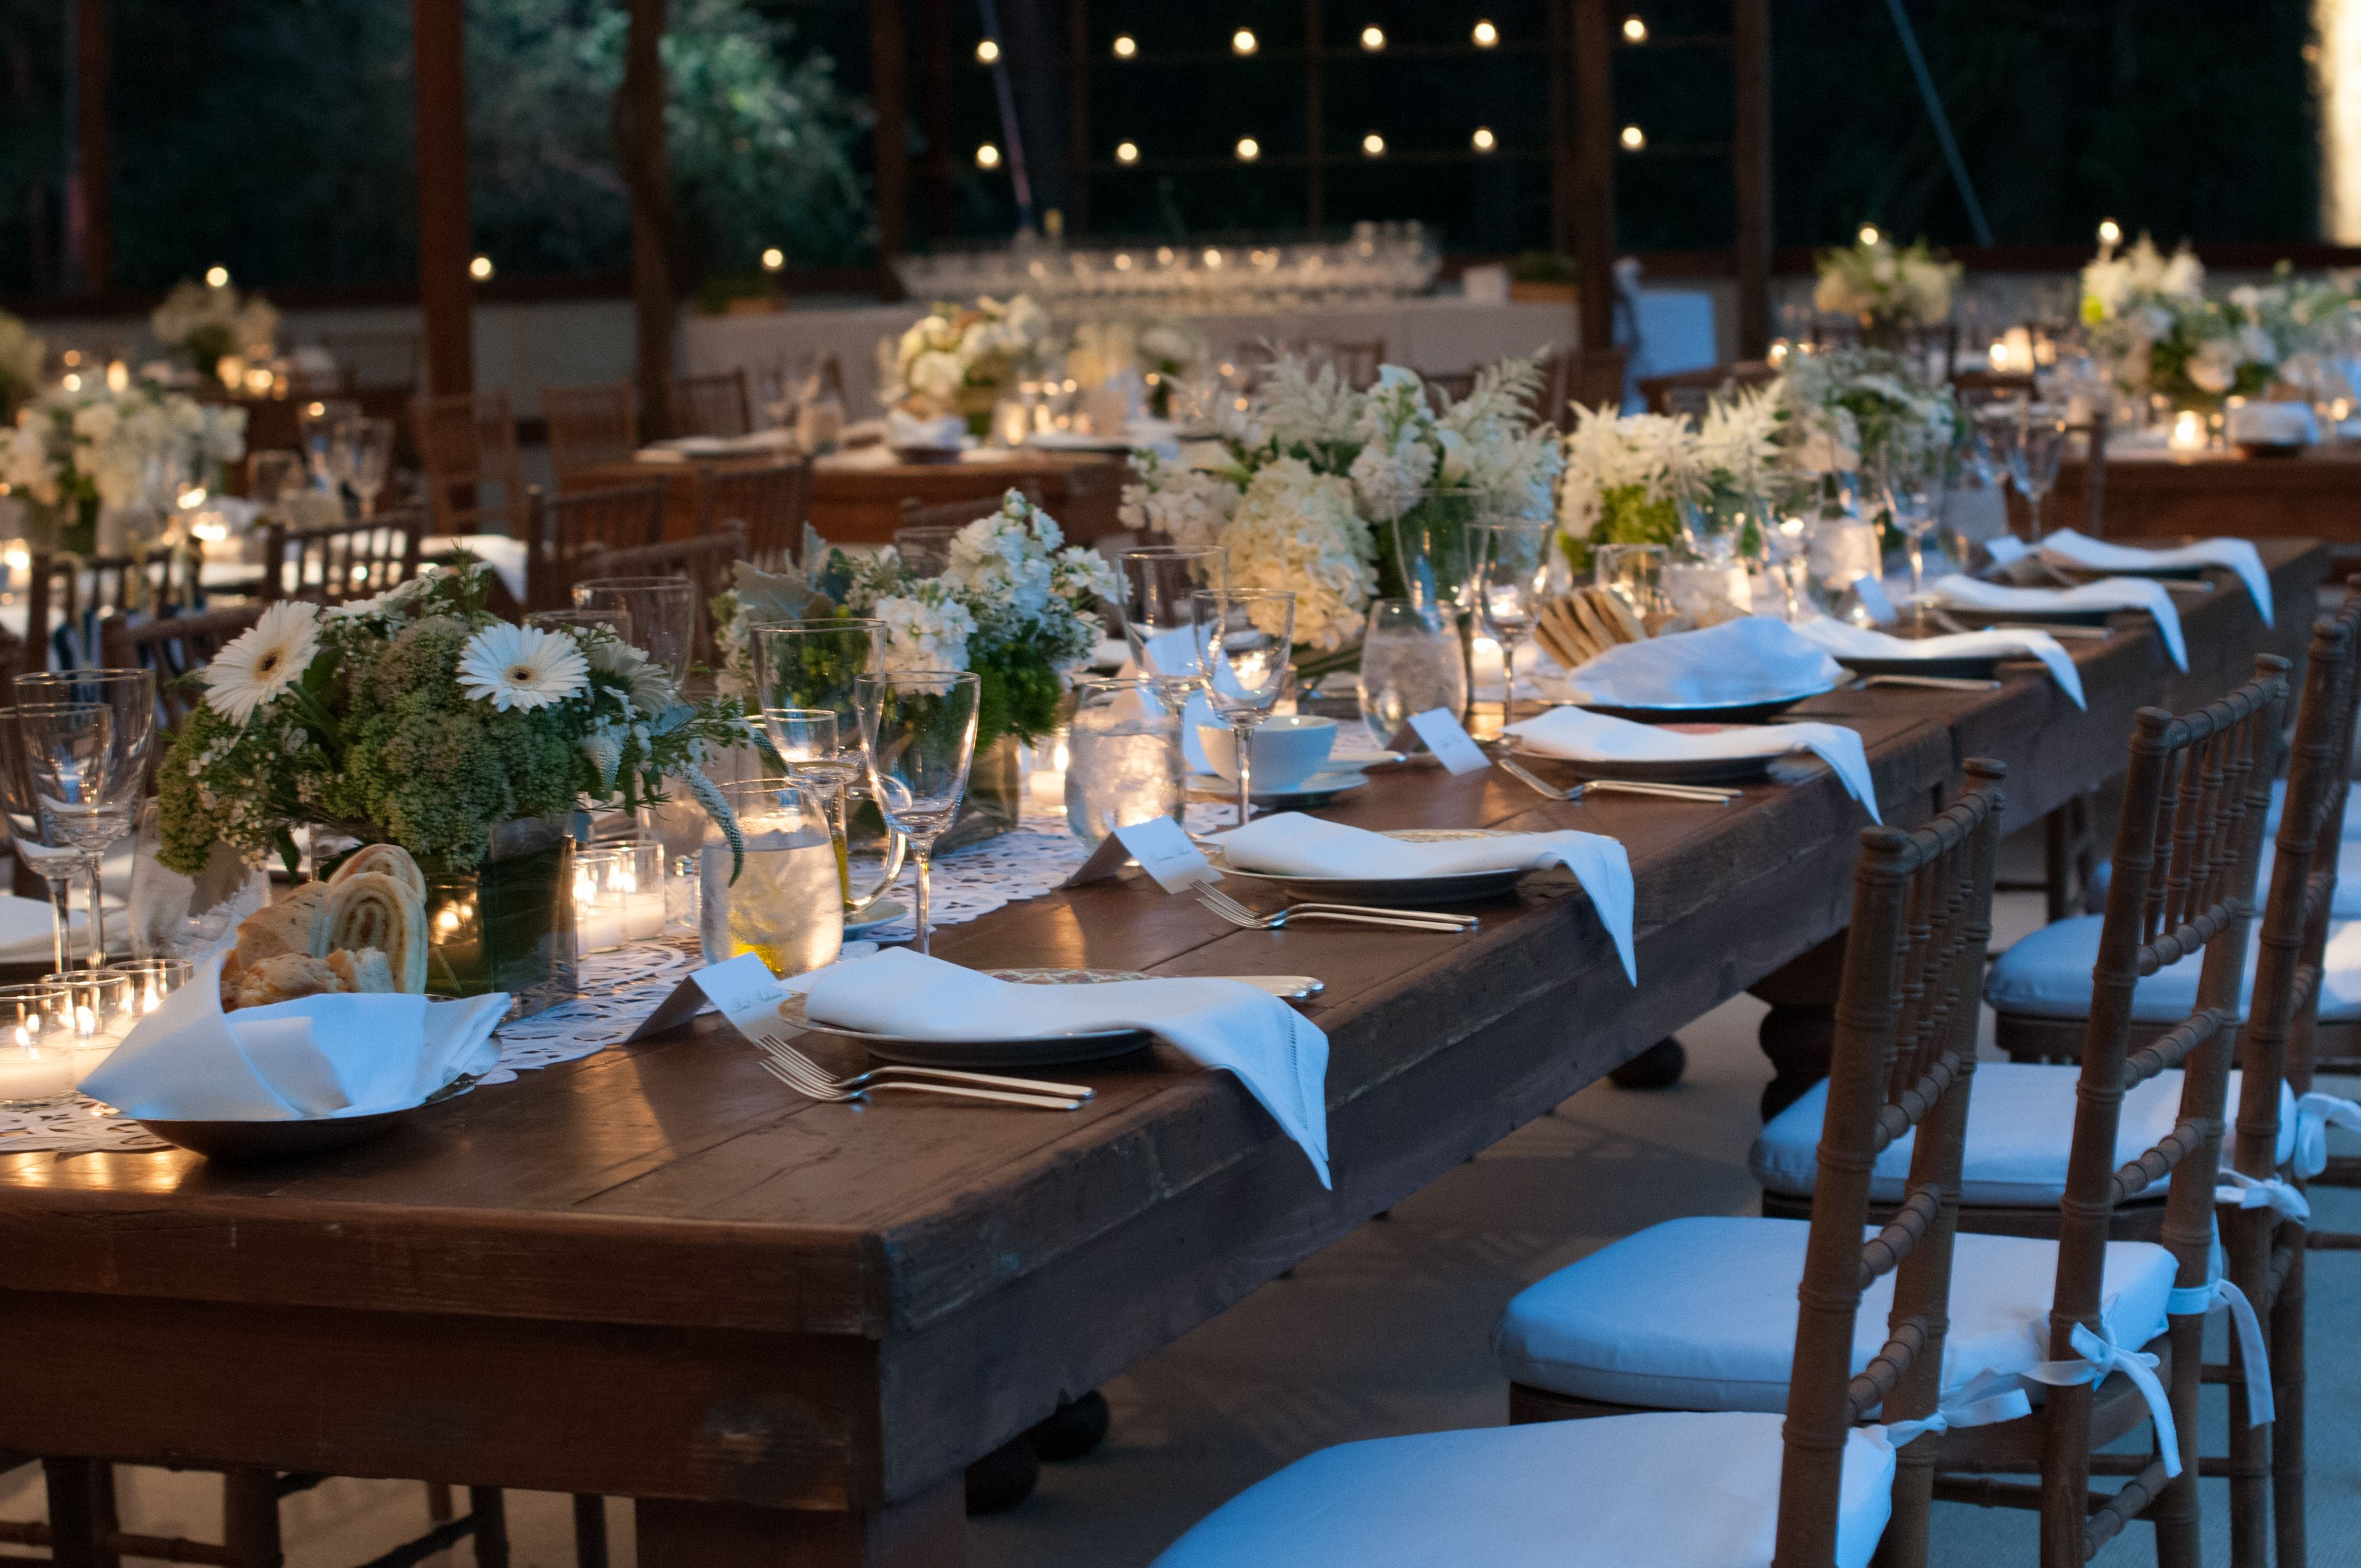 long table setup wedding reception%0A Farm table setting  white and green floral centerpieces  Irish linen  napkins  various colored